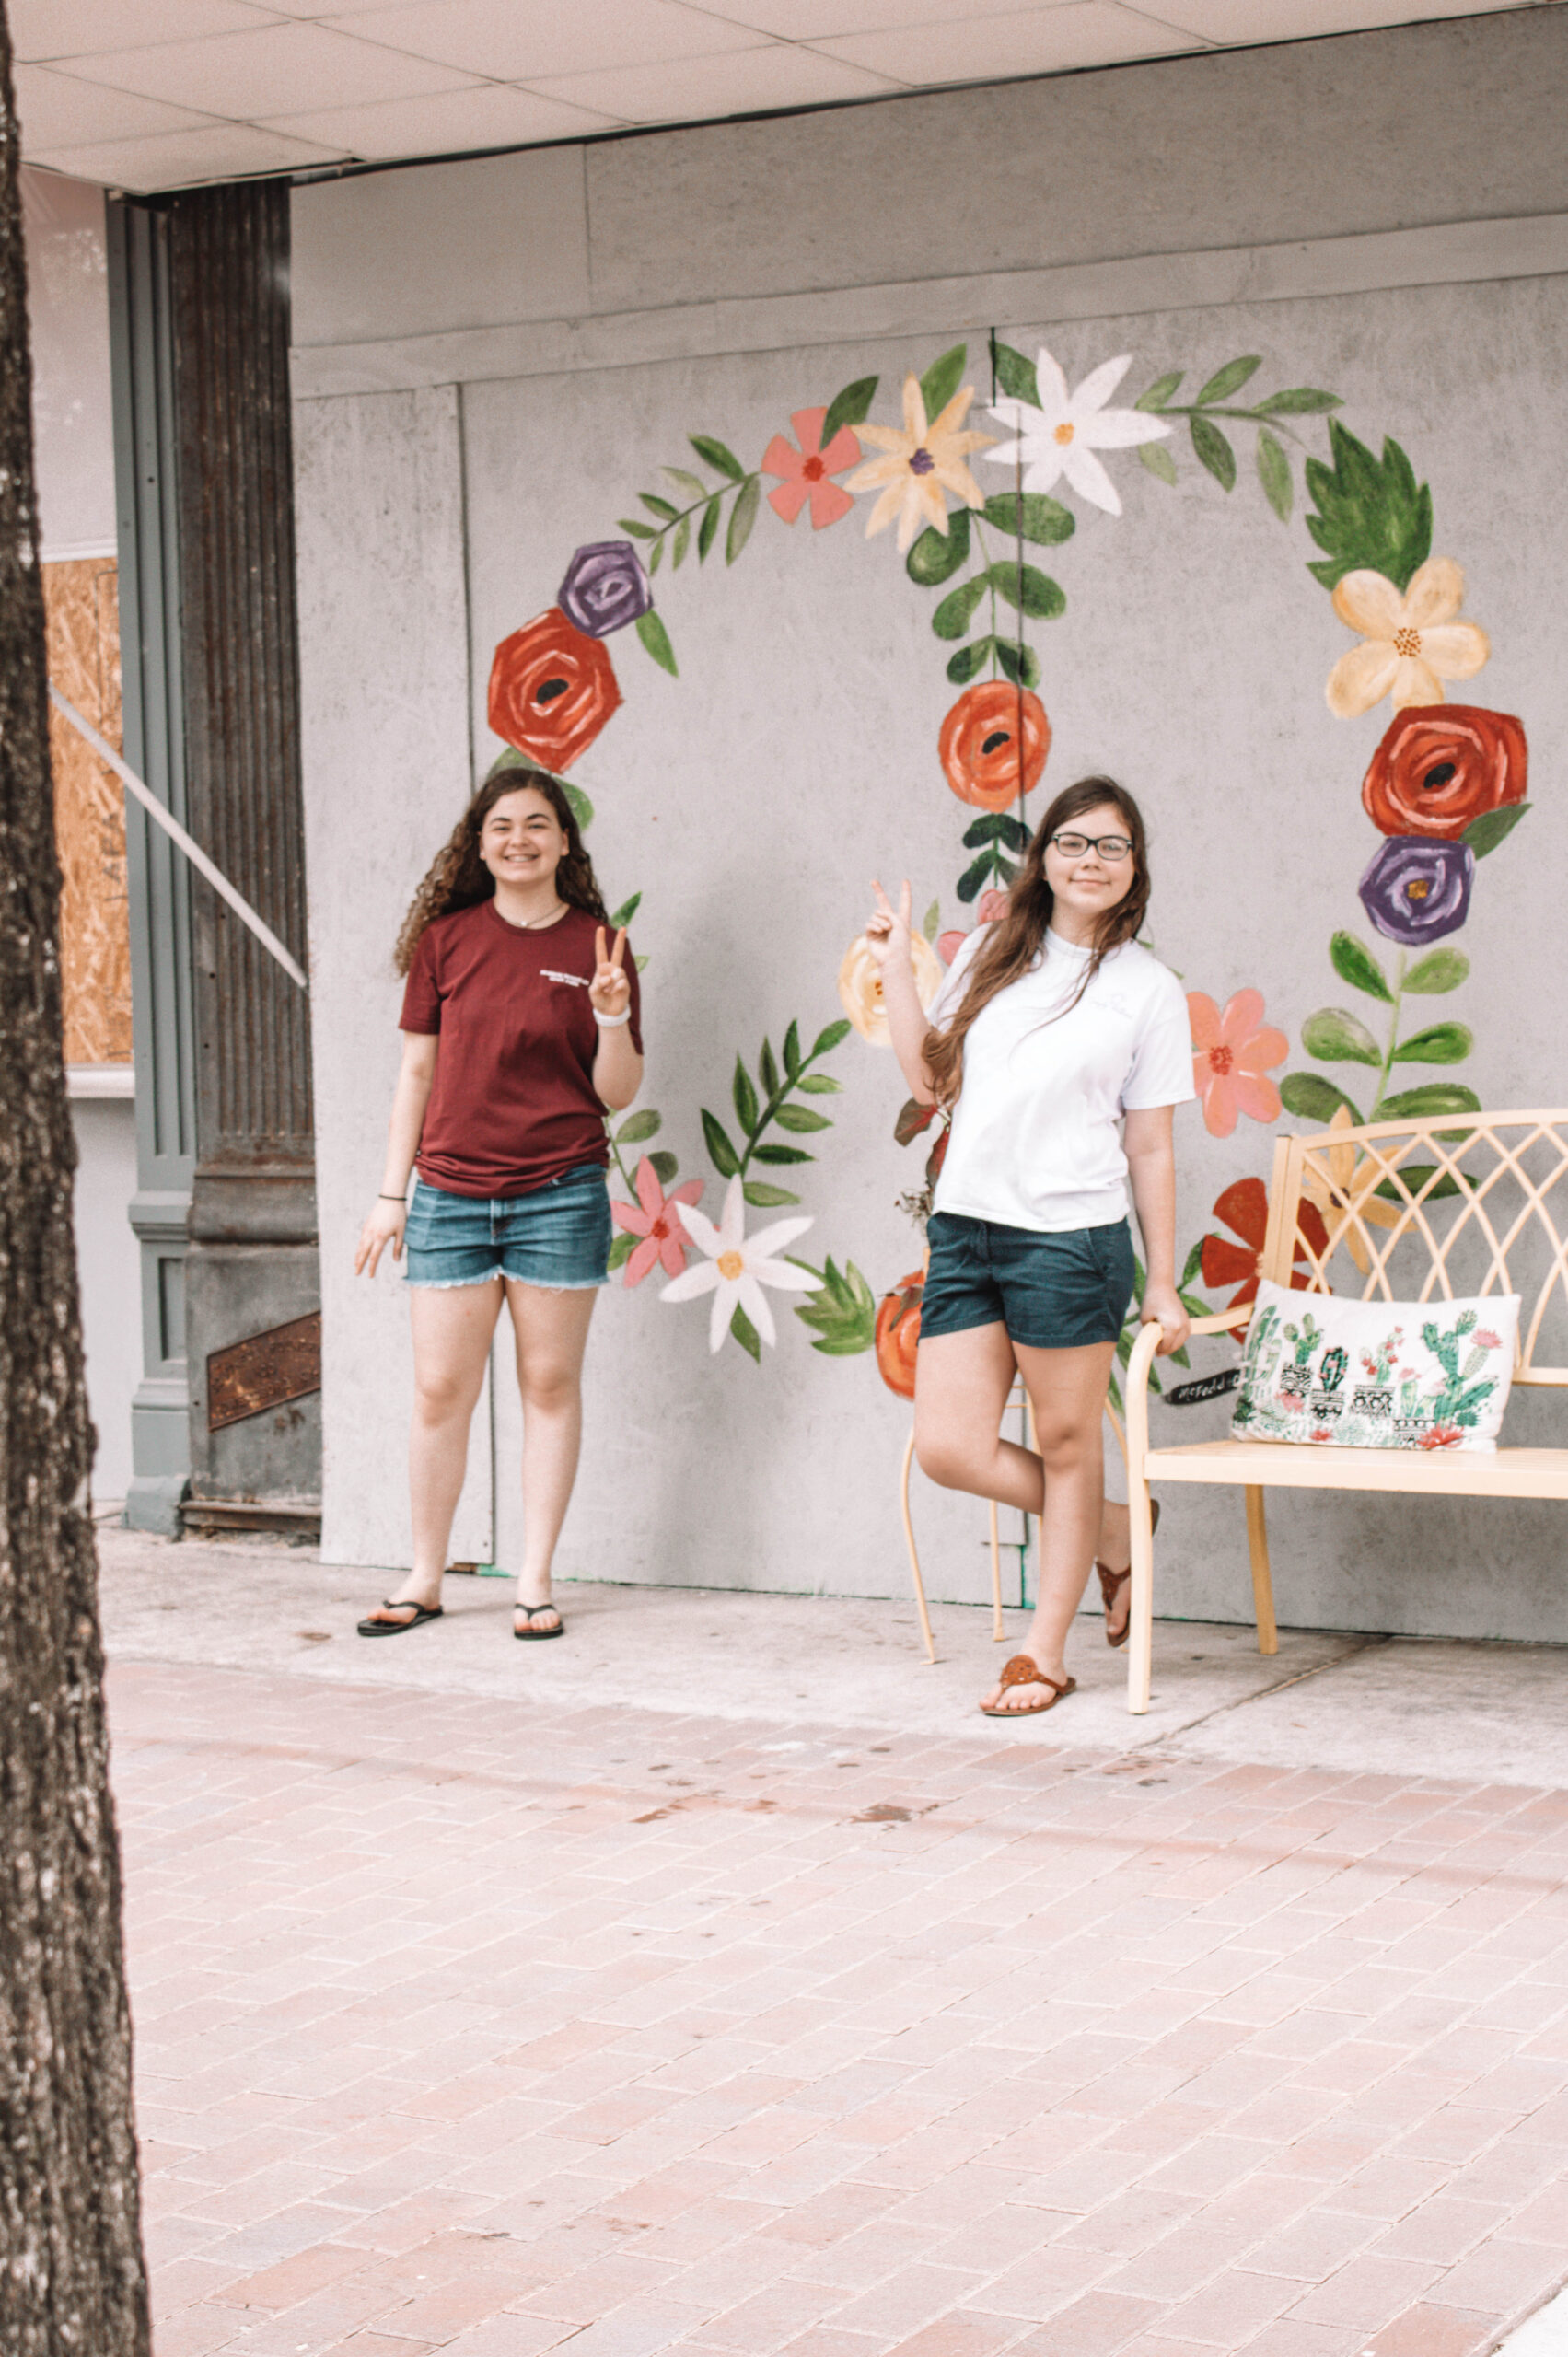 two girls standing in front of a floral peace sign mural